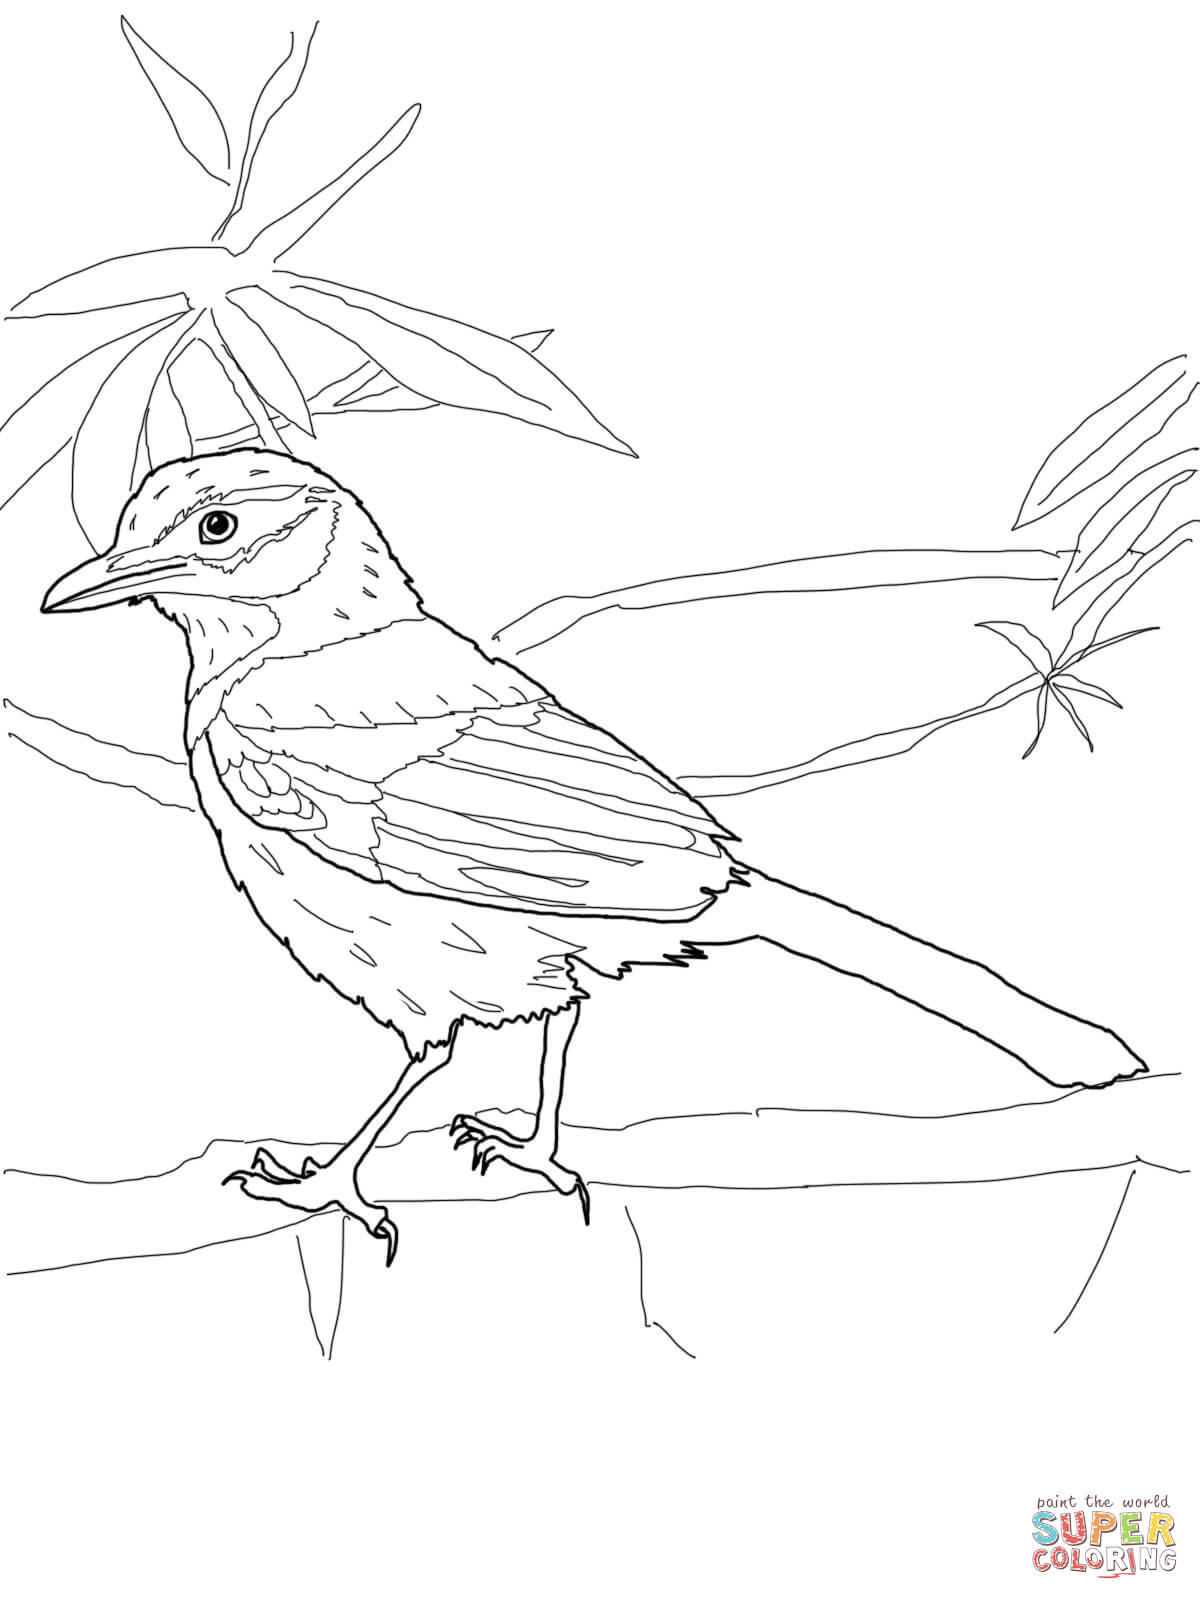 Scrub Jay Coloring Page Free Printable Coloring Pages